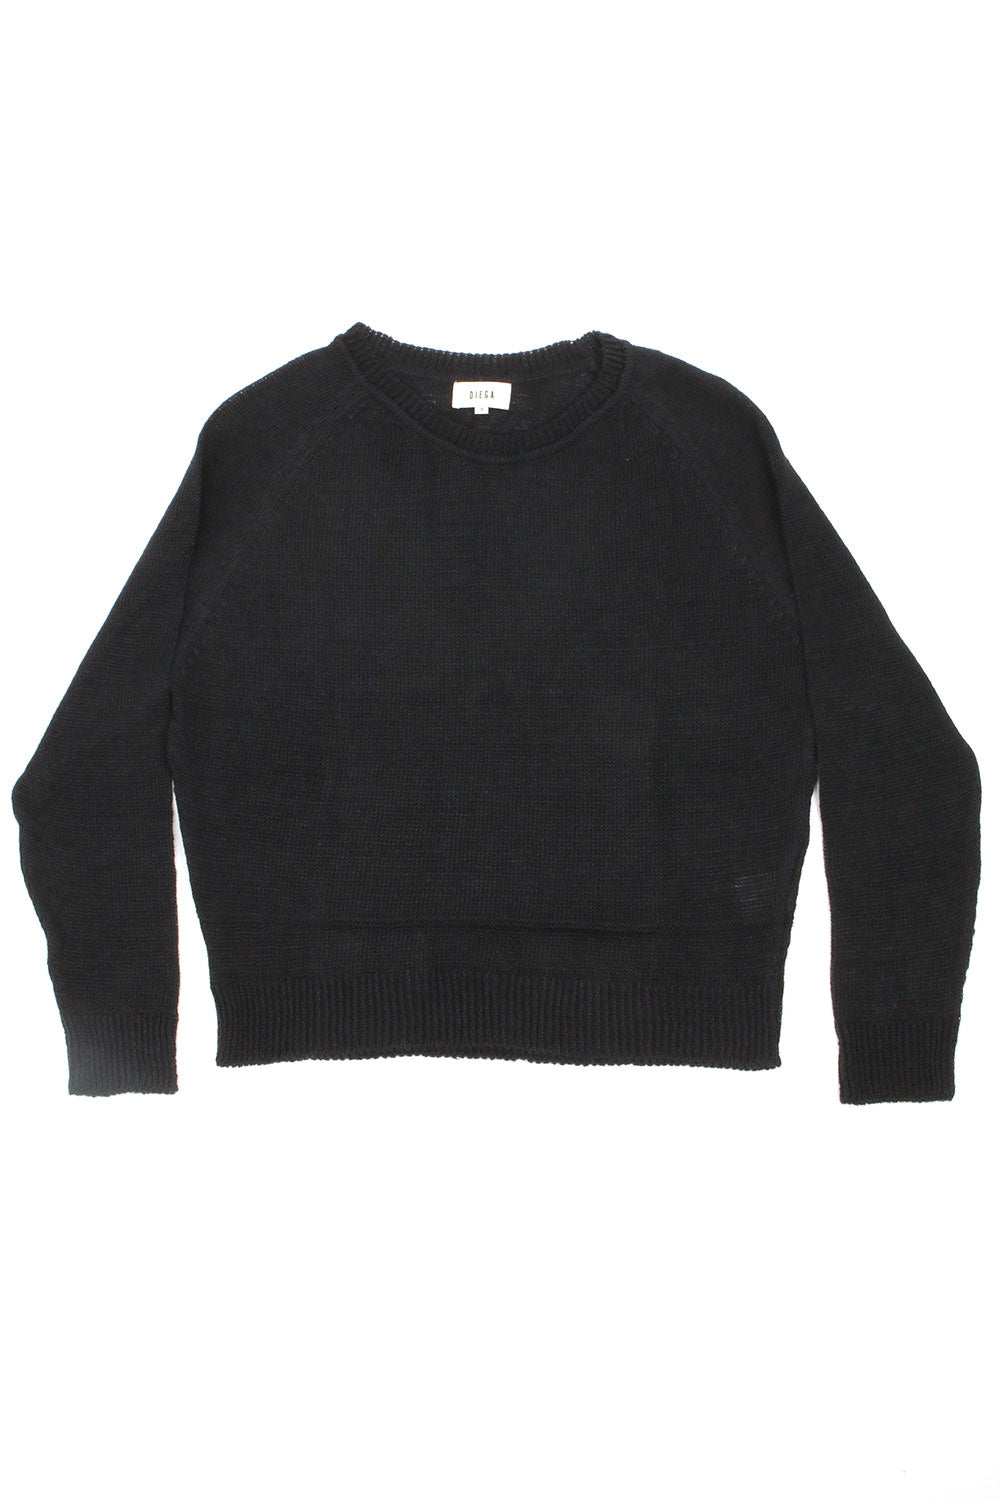 Pumparo Midnight Knit